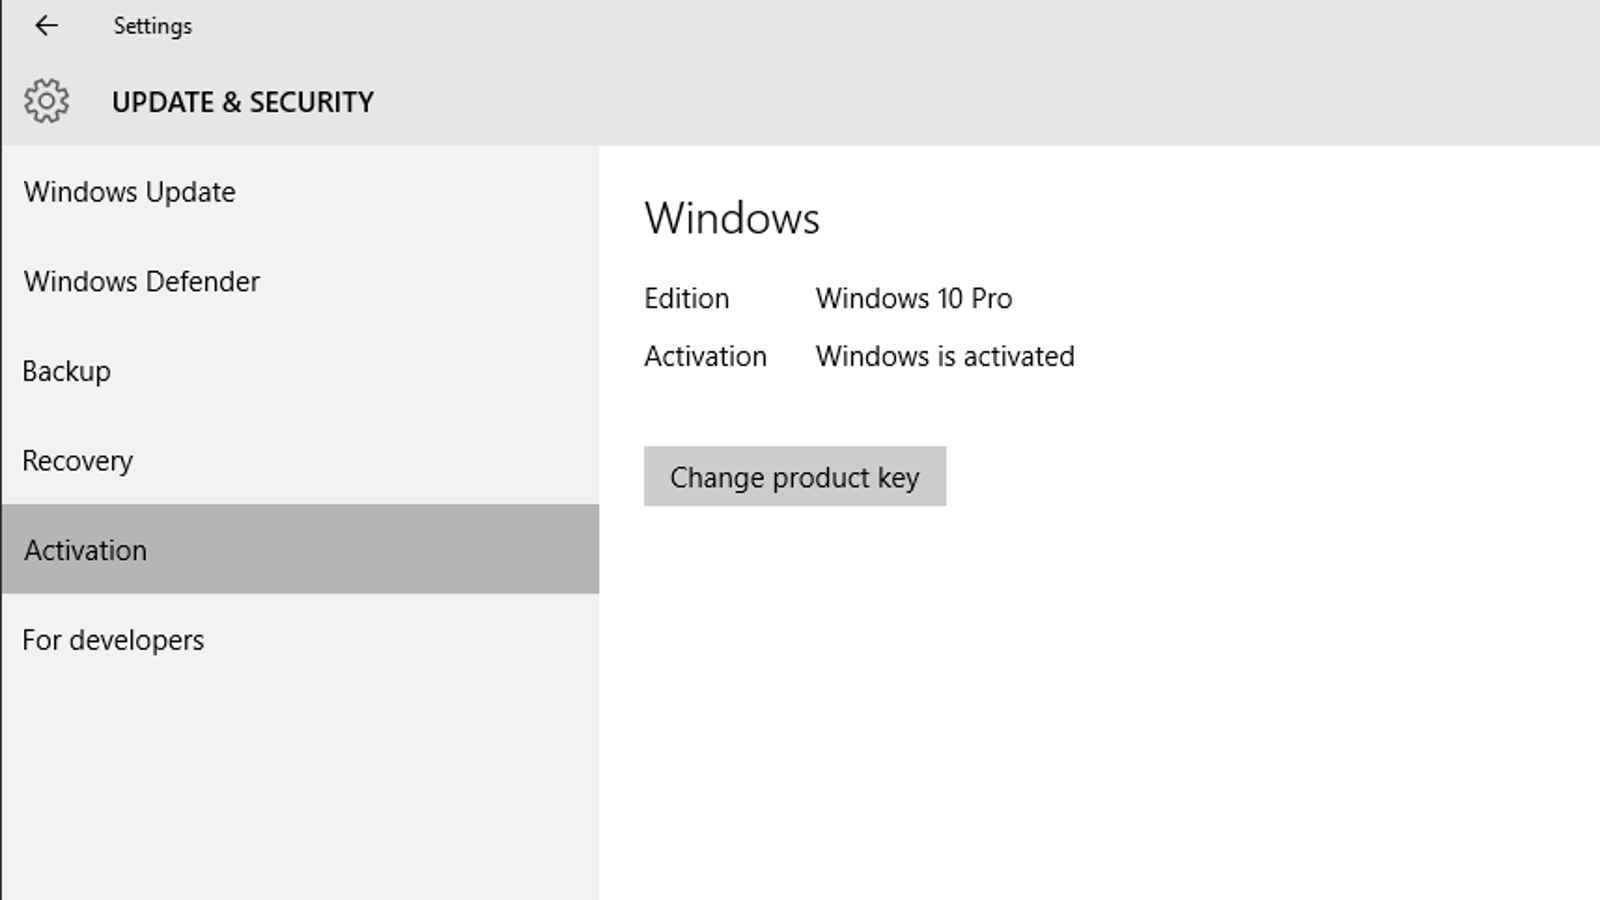 windows 8 product key not working for windows 10